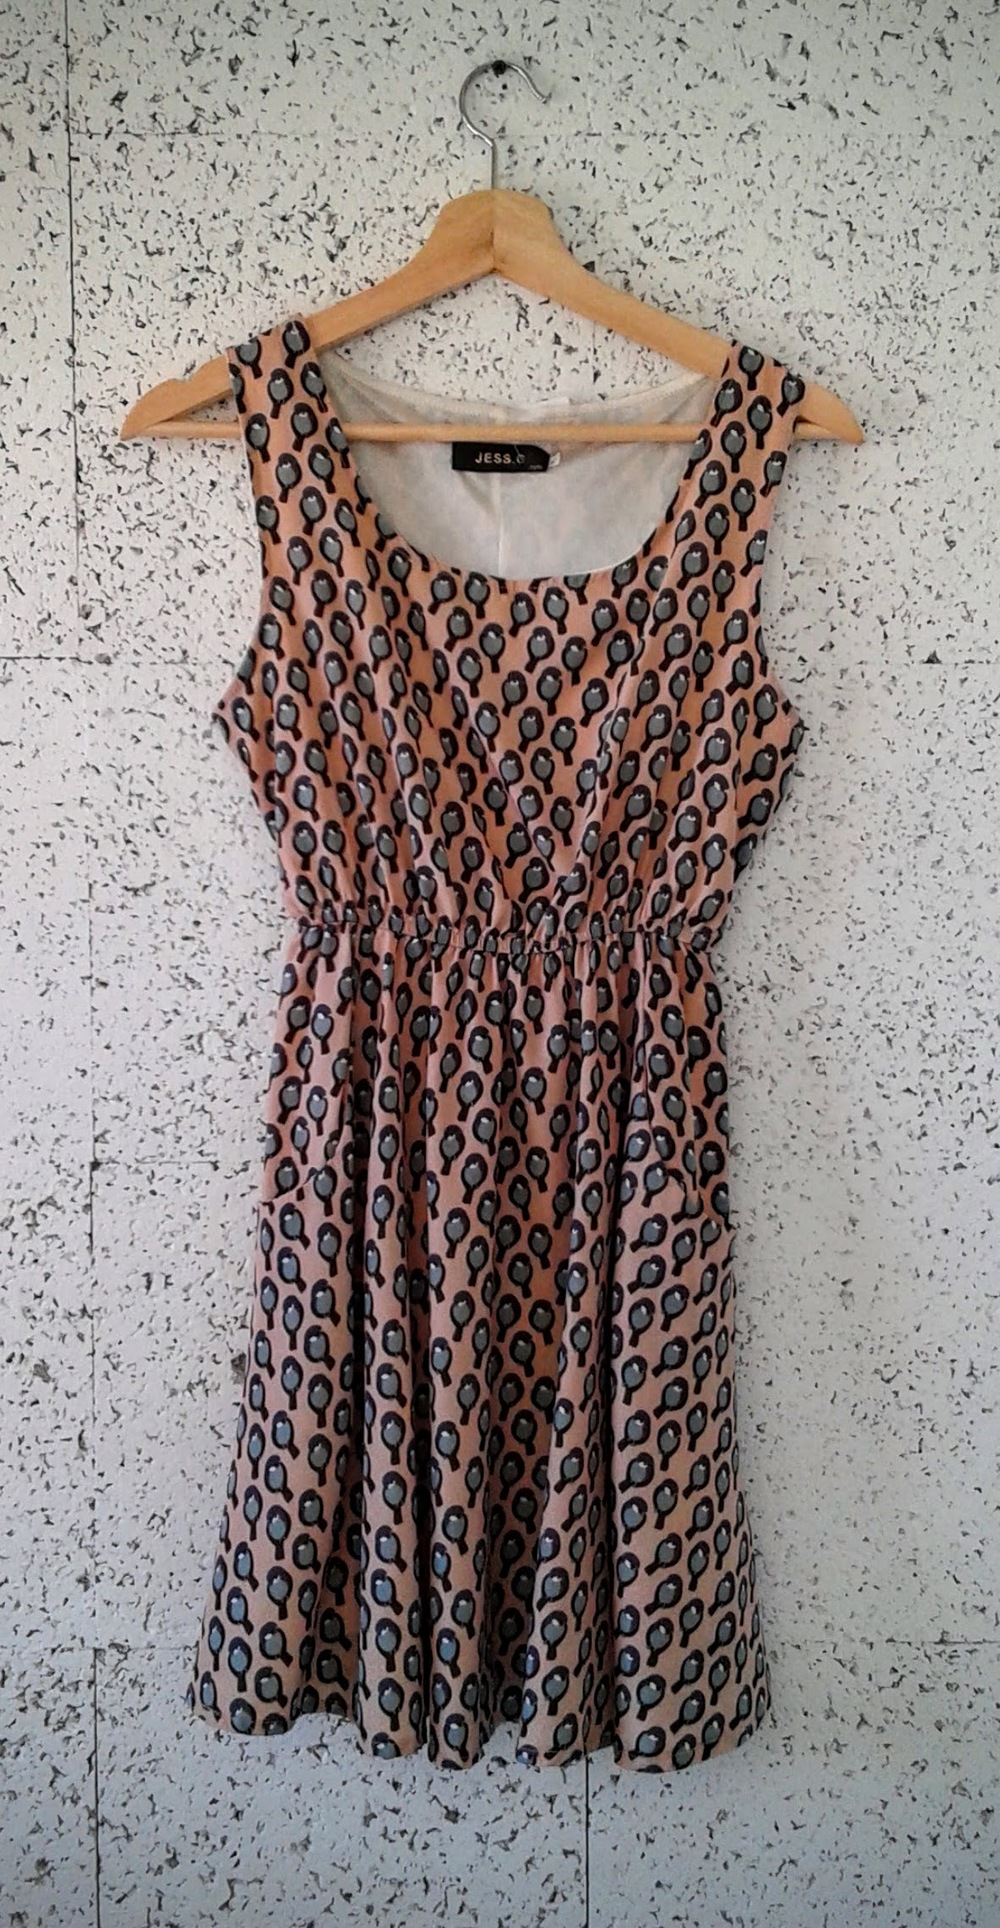 Jess C dress; Size M, $26